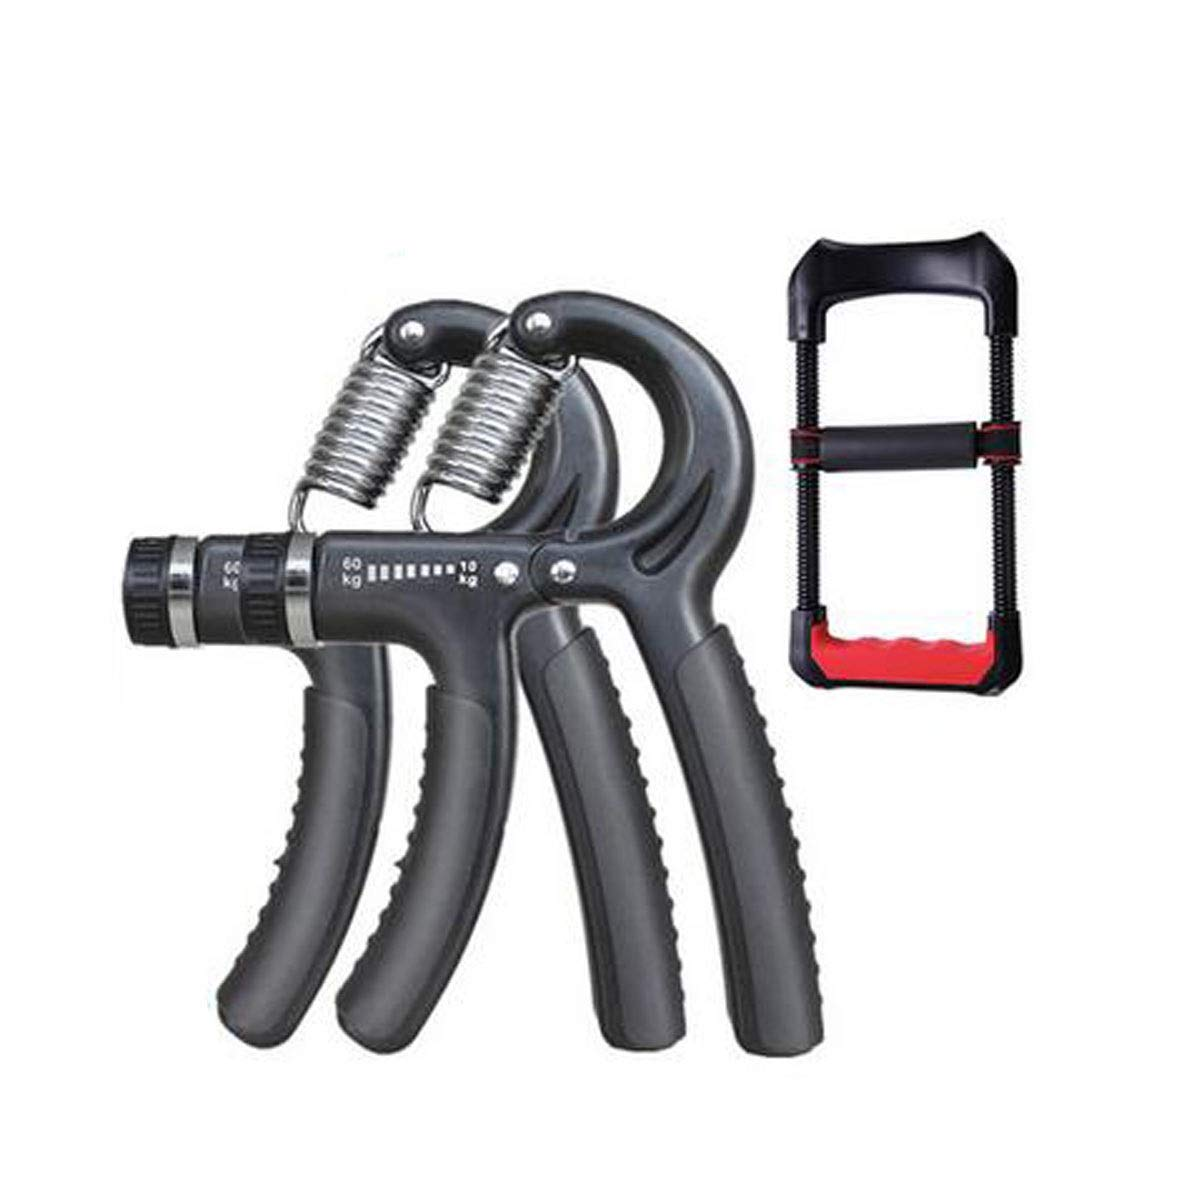 Jiansheng Hand Grip, Professional Training Hand Man's Training Arm Muscle Rehabilitation Training Finger Strength Wrist Strength Fitness Device, Red Color (3 Piece Suit) (Color : Black)